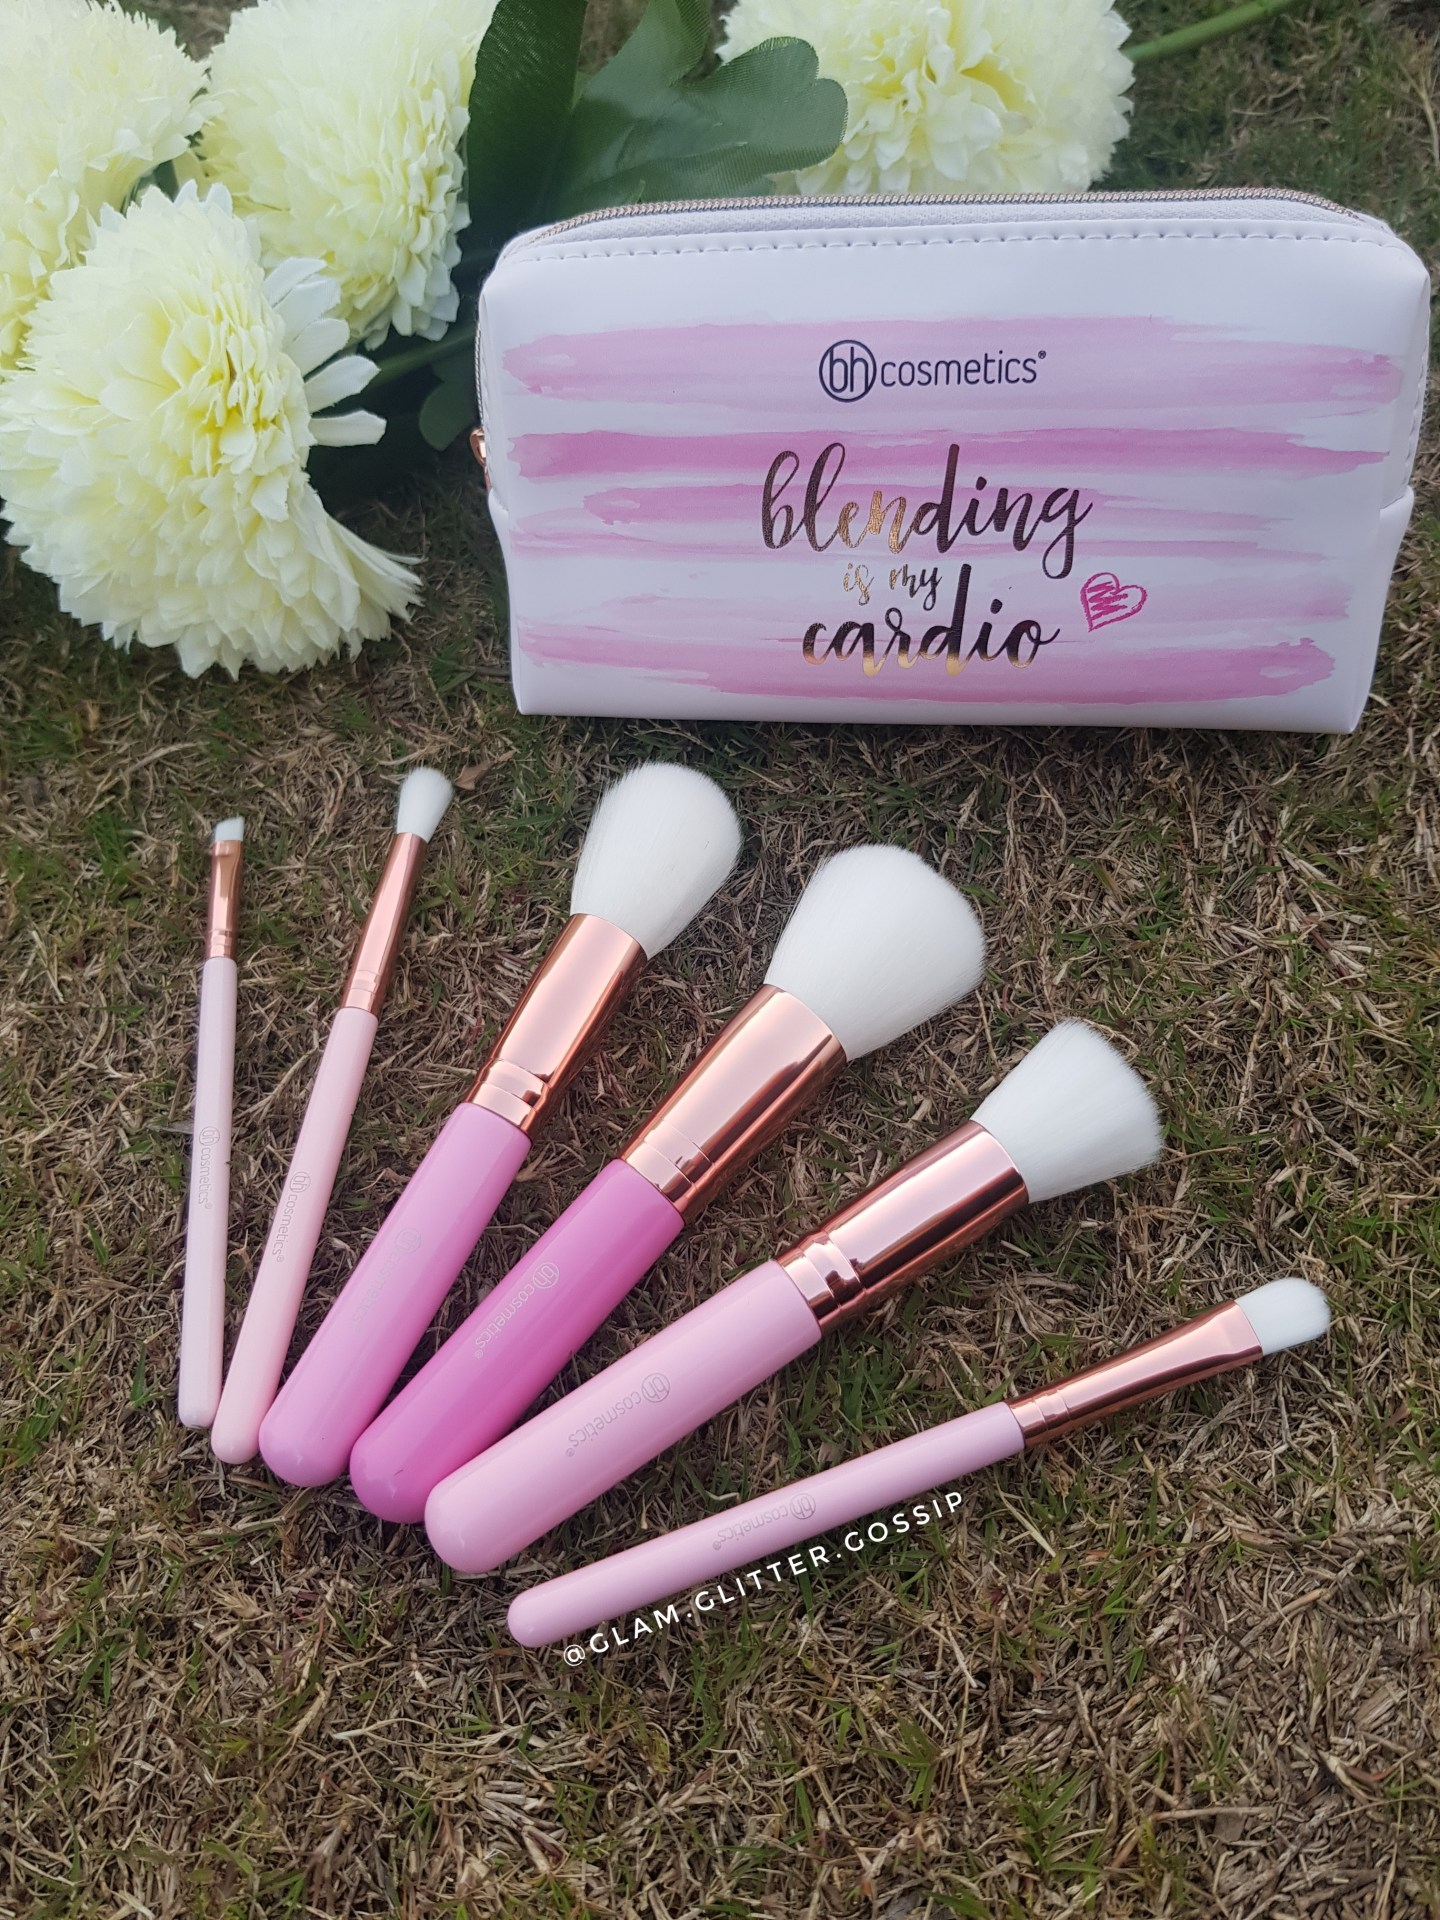 BH Cosmetics The Mini Pink Perfection Brush Set Review